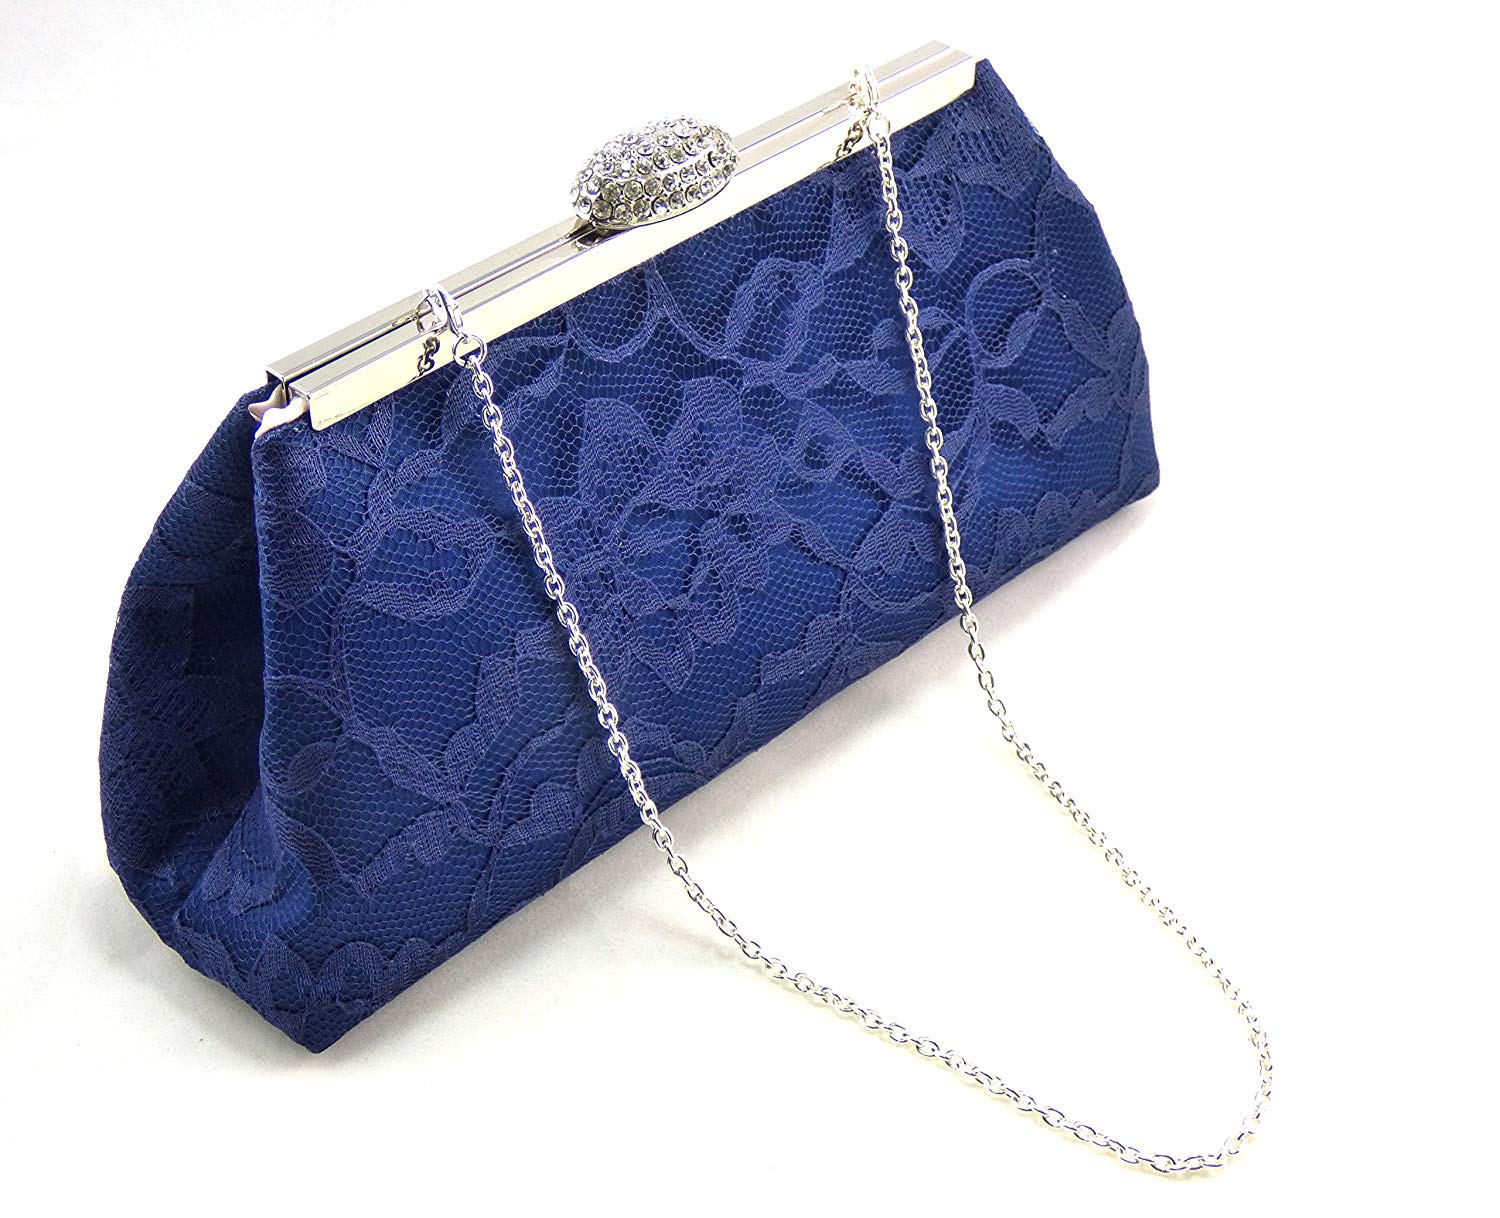 Navy Blue and Blush Bridal Clutch, Something Blue, Bridesmaid Gift, Mother of the Bride Clutch, Bridesmaid Clutch